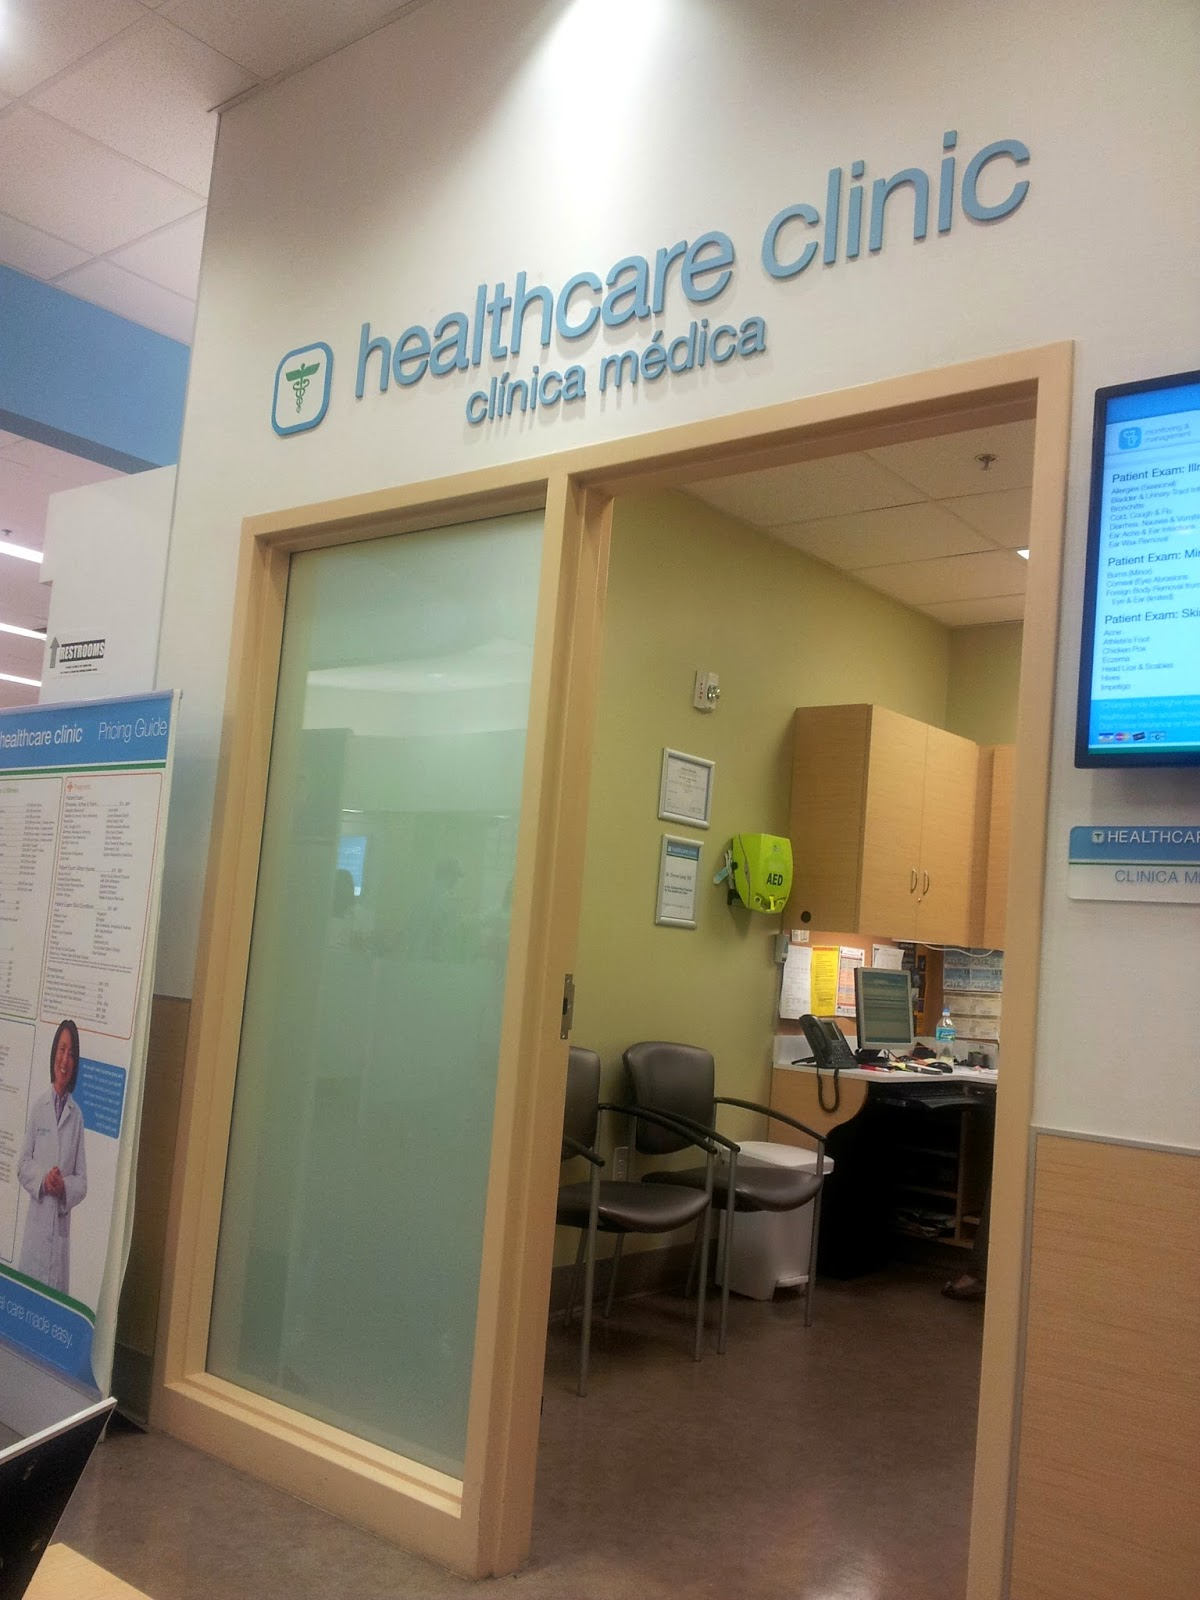 #HealthcareClinic #shop #CollectiveBias